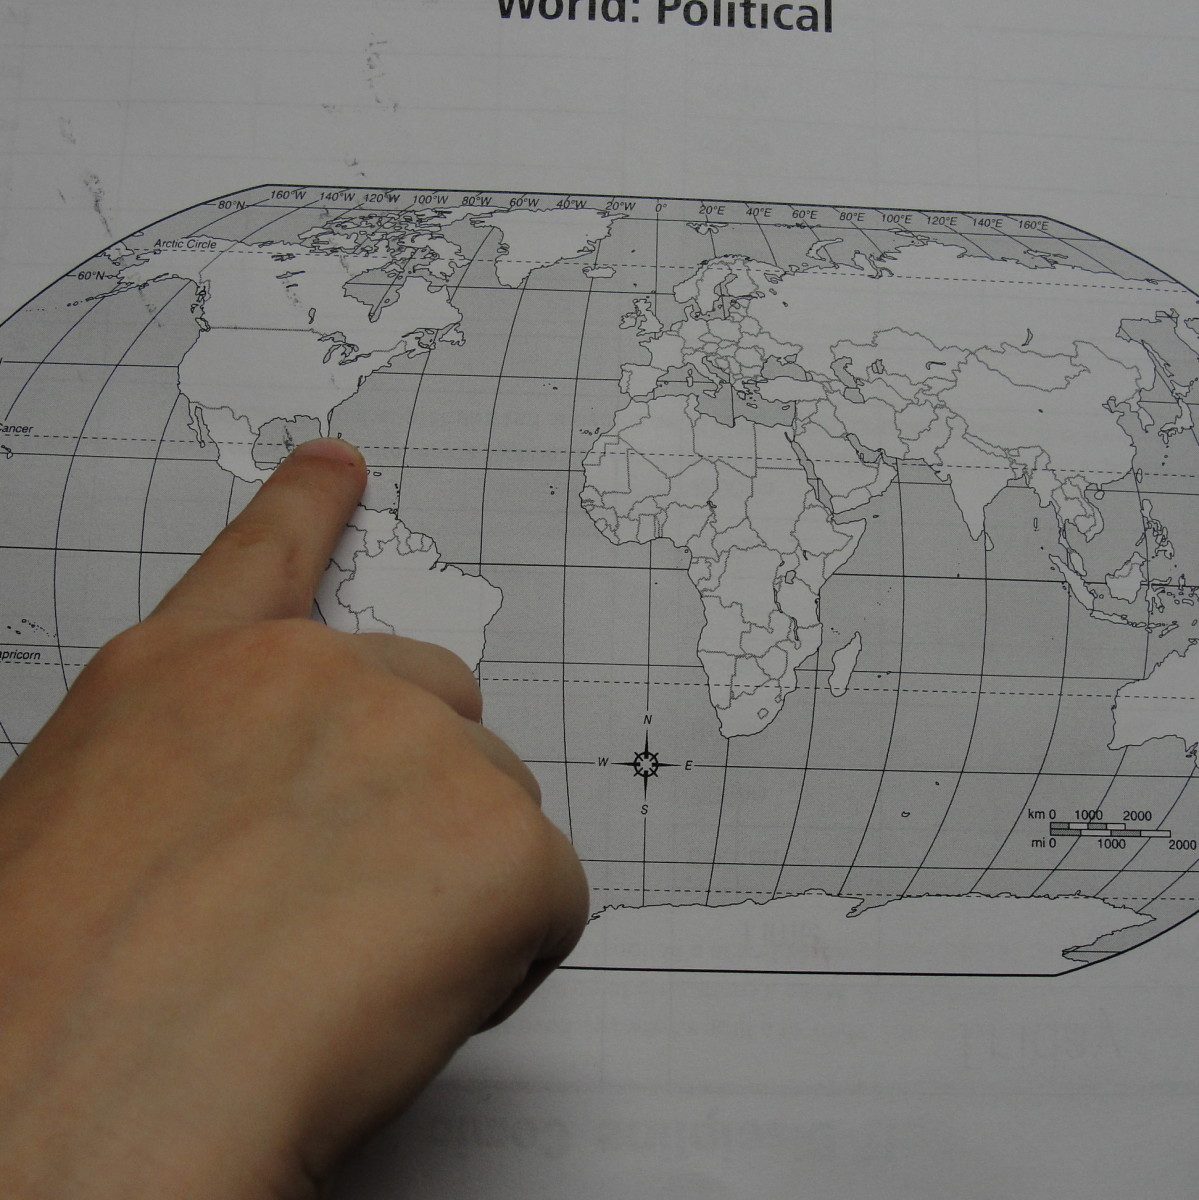 Finding locations on a world map